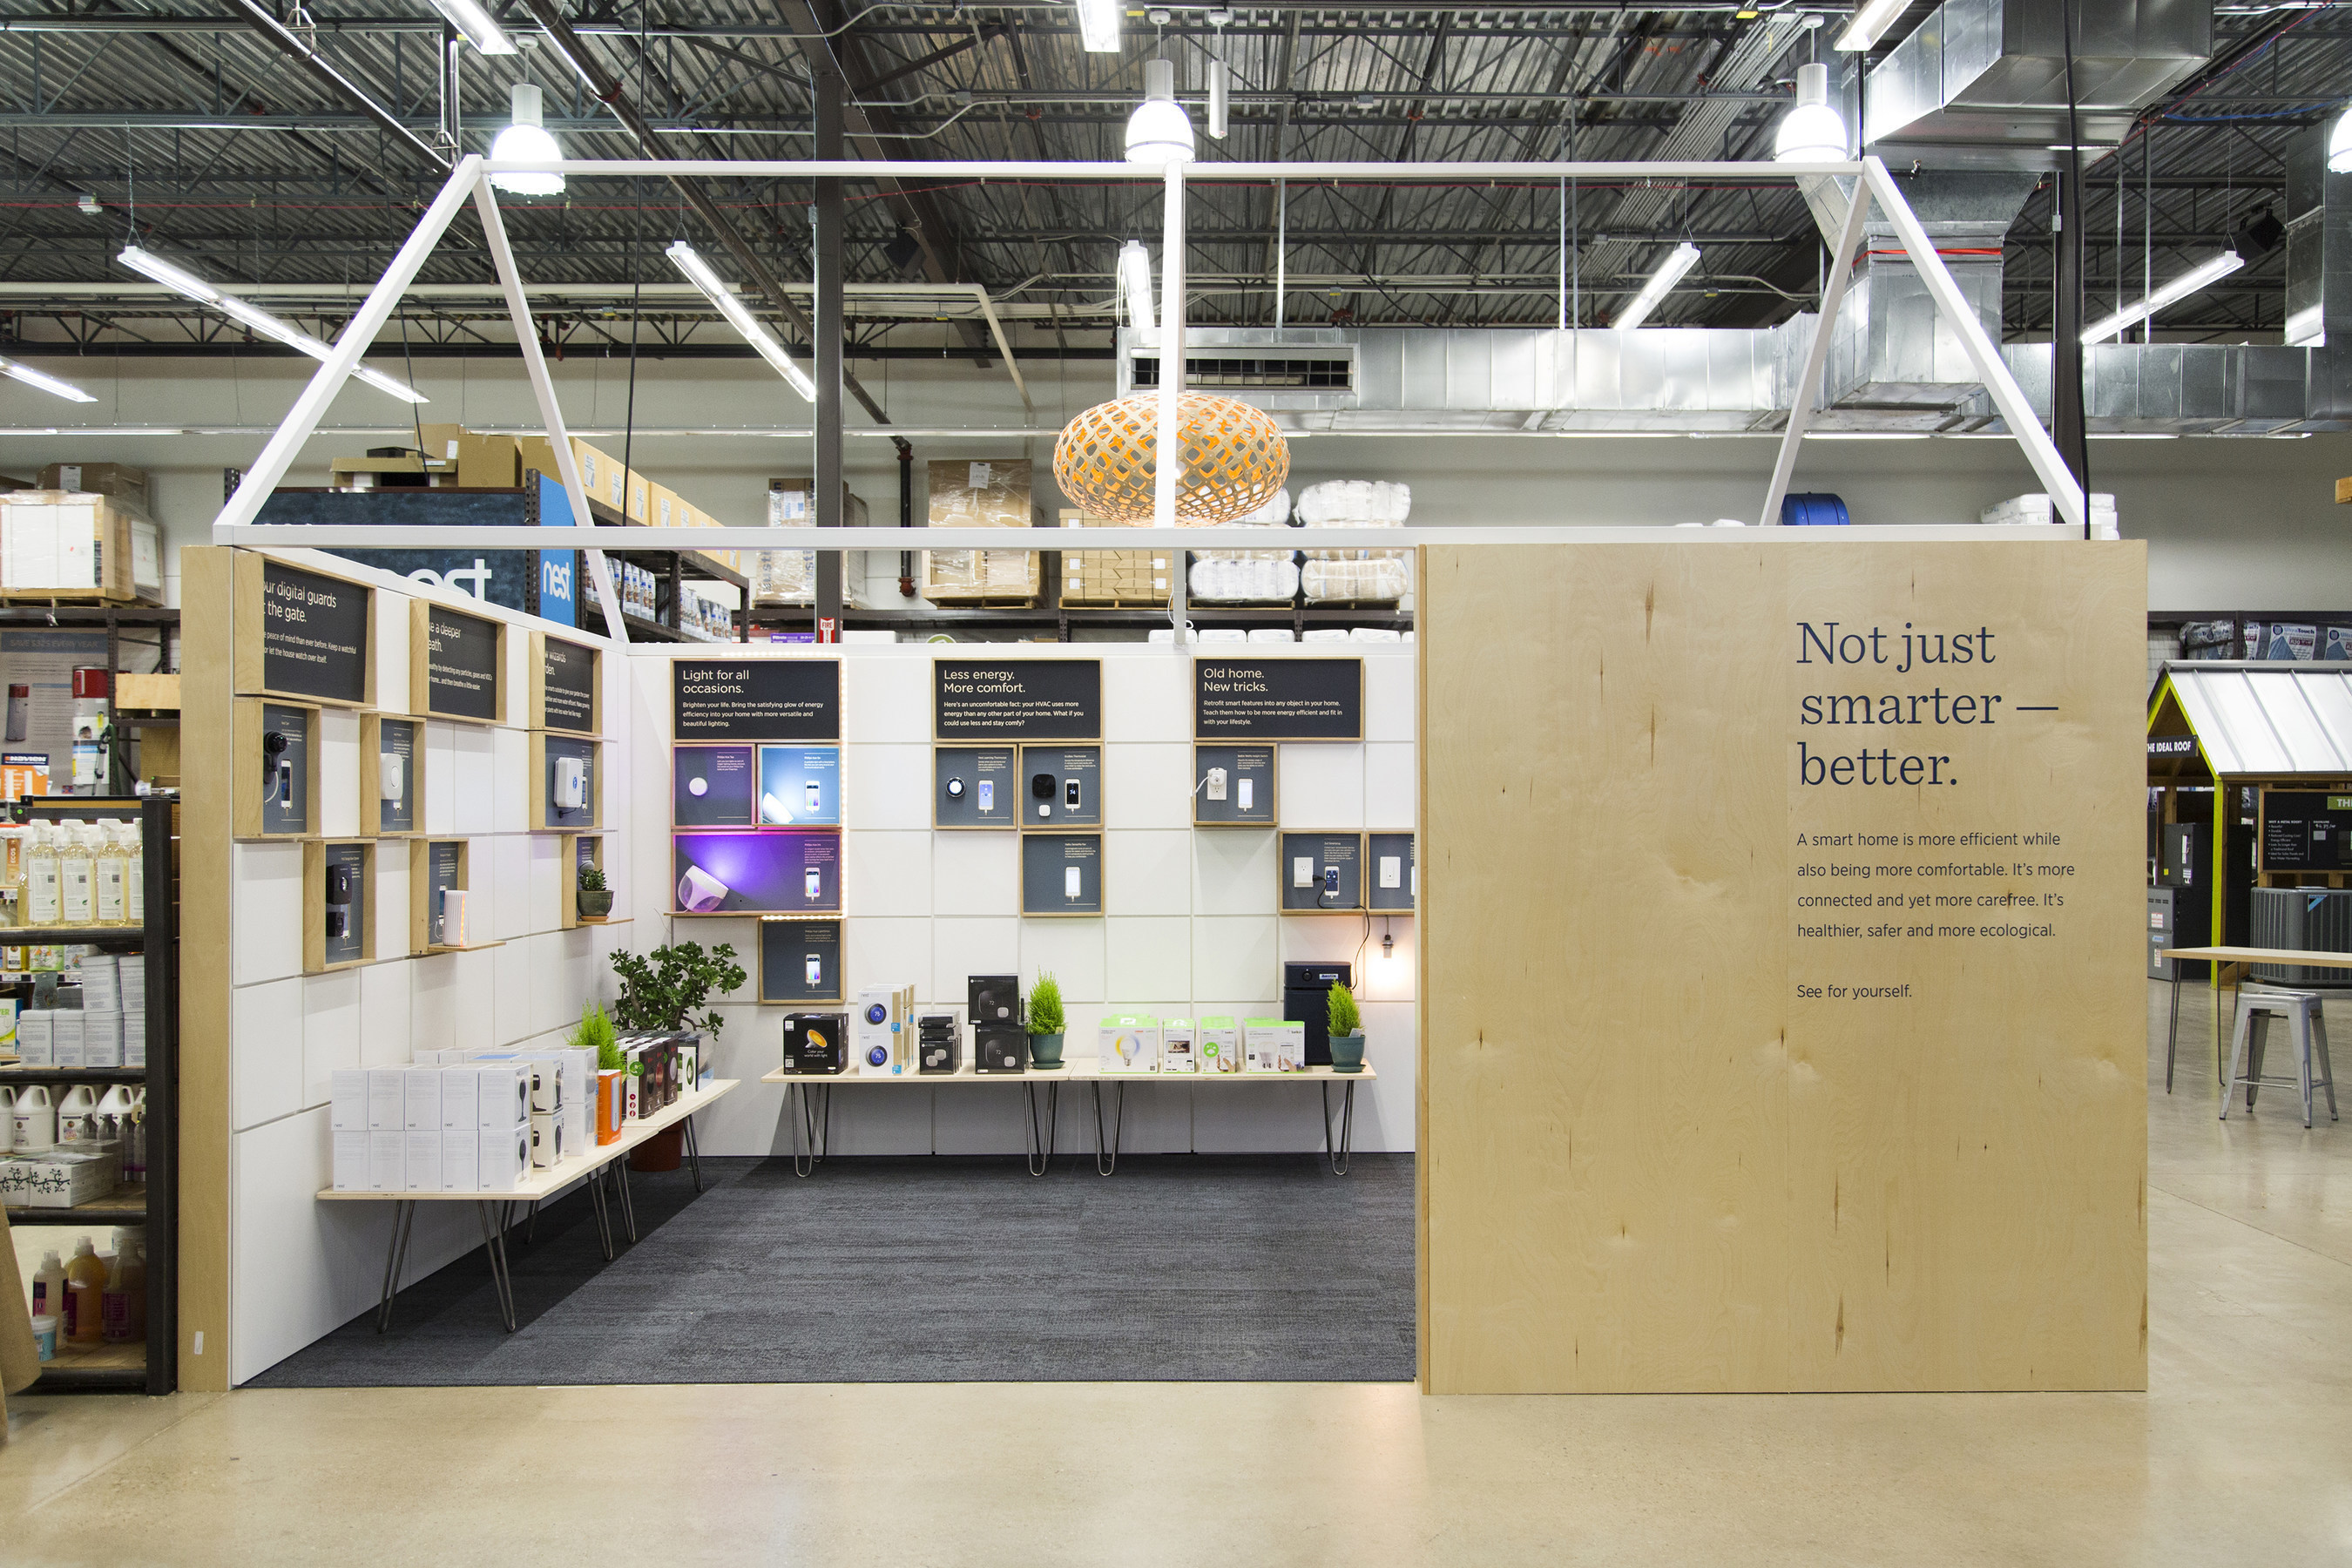 TreeHouse's 2015 top smart-home products are featured inside TreeHouse's flagship Austin store. The list includes thermostats that know when you're sleeping, door locks and lighting you control from your phone, and ceiling fans that sense when you're in the room.